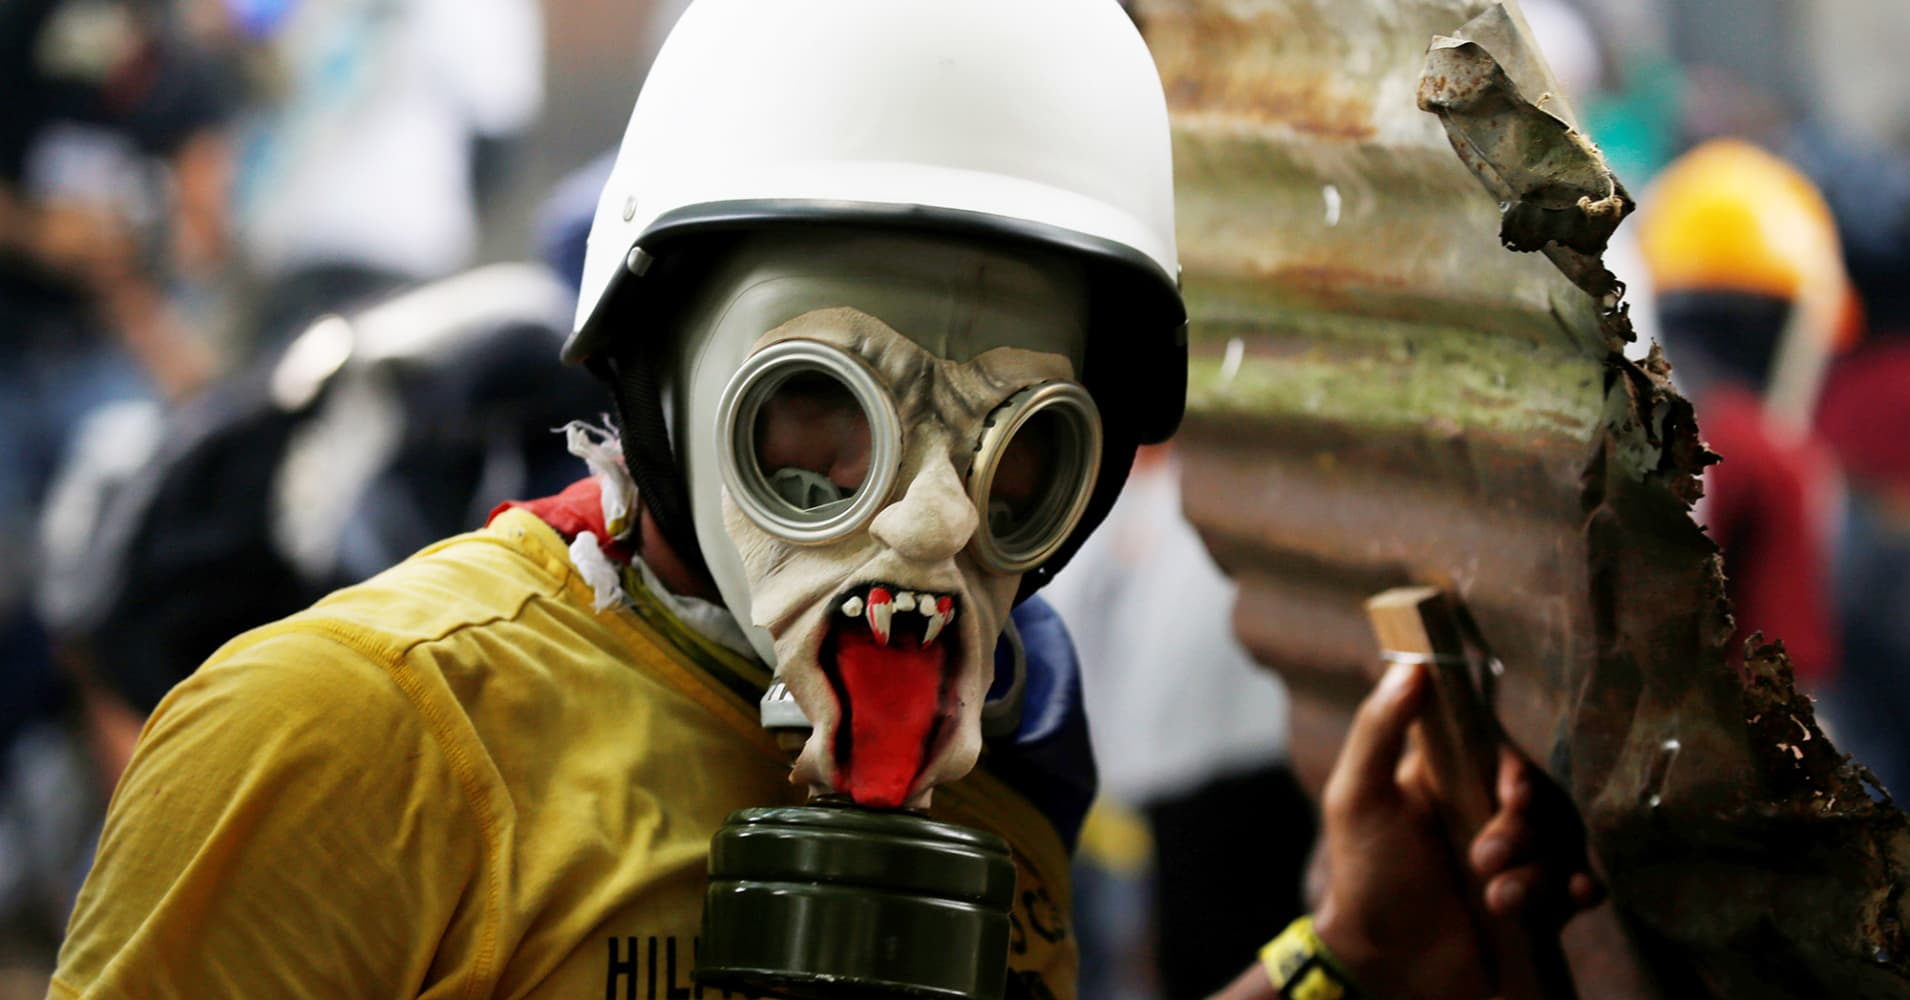 Discussion on this topic: How to Make a Gas Mask, how-to-make-a-gas-mask/